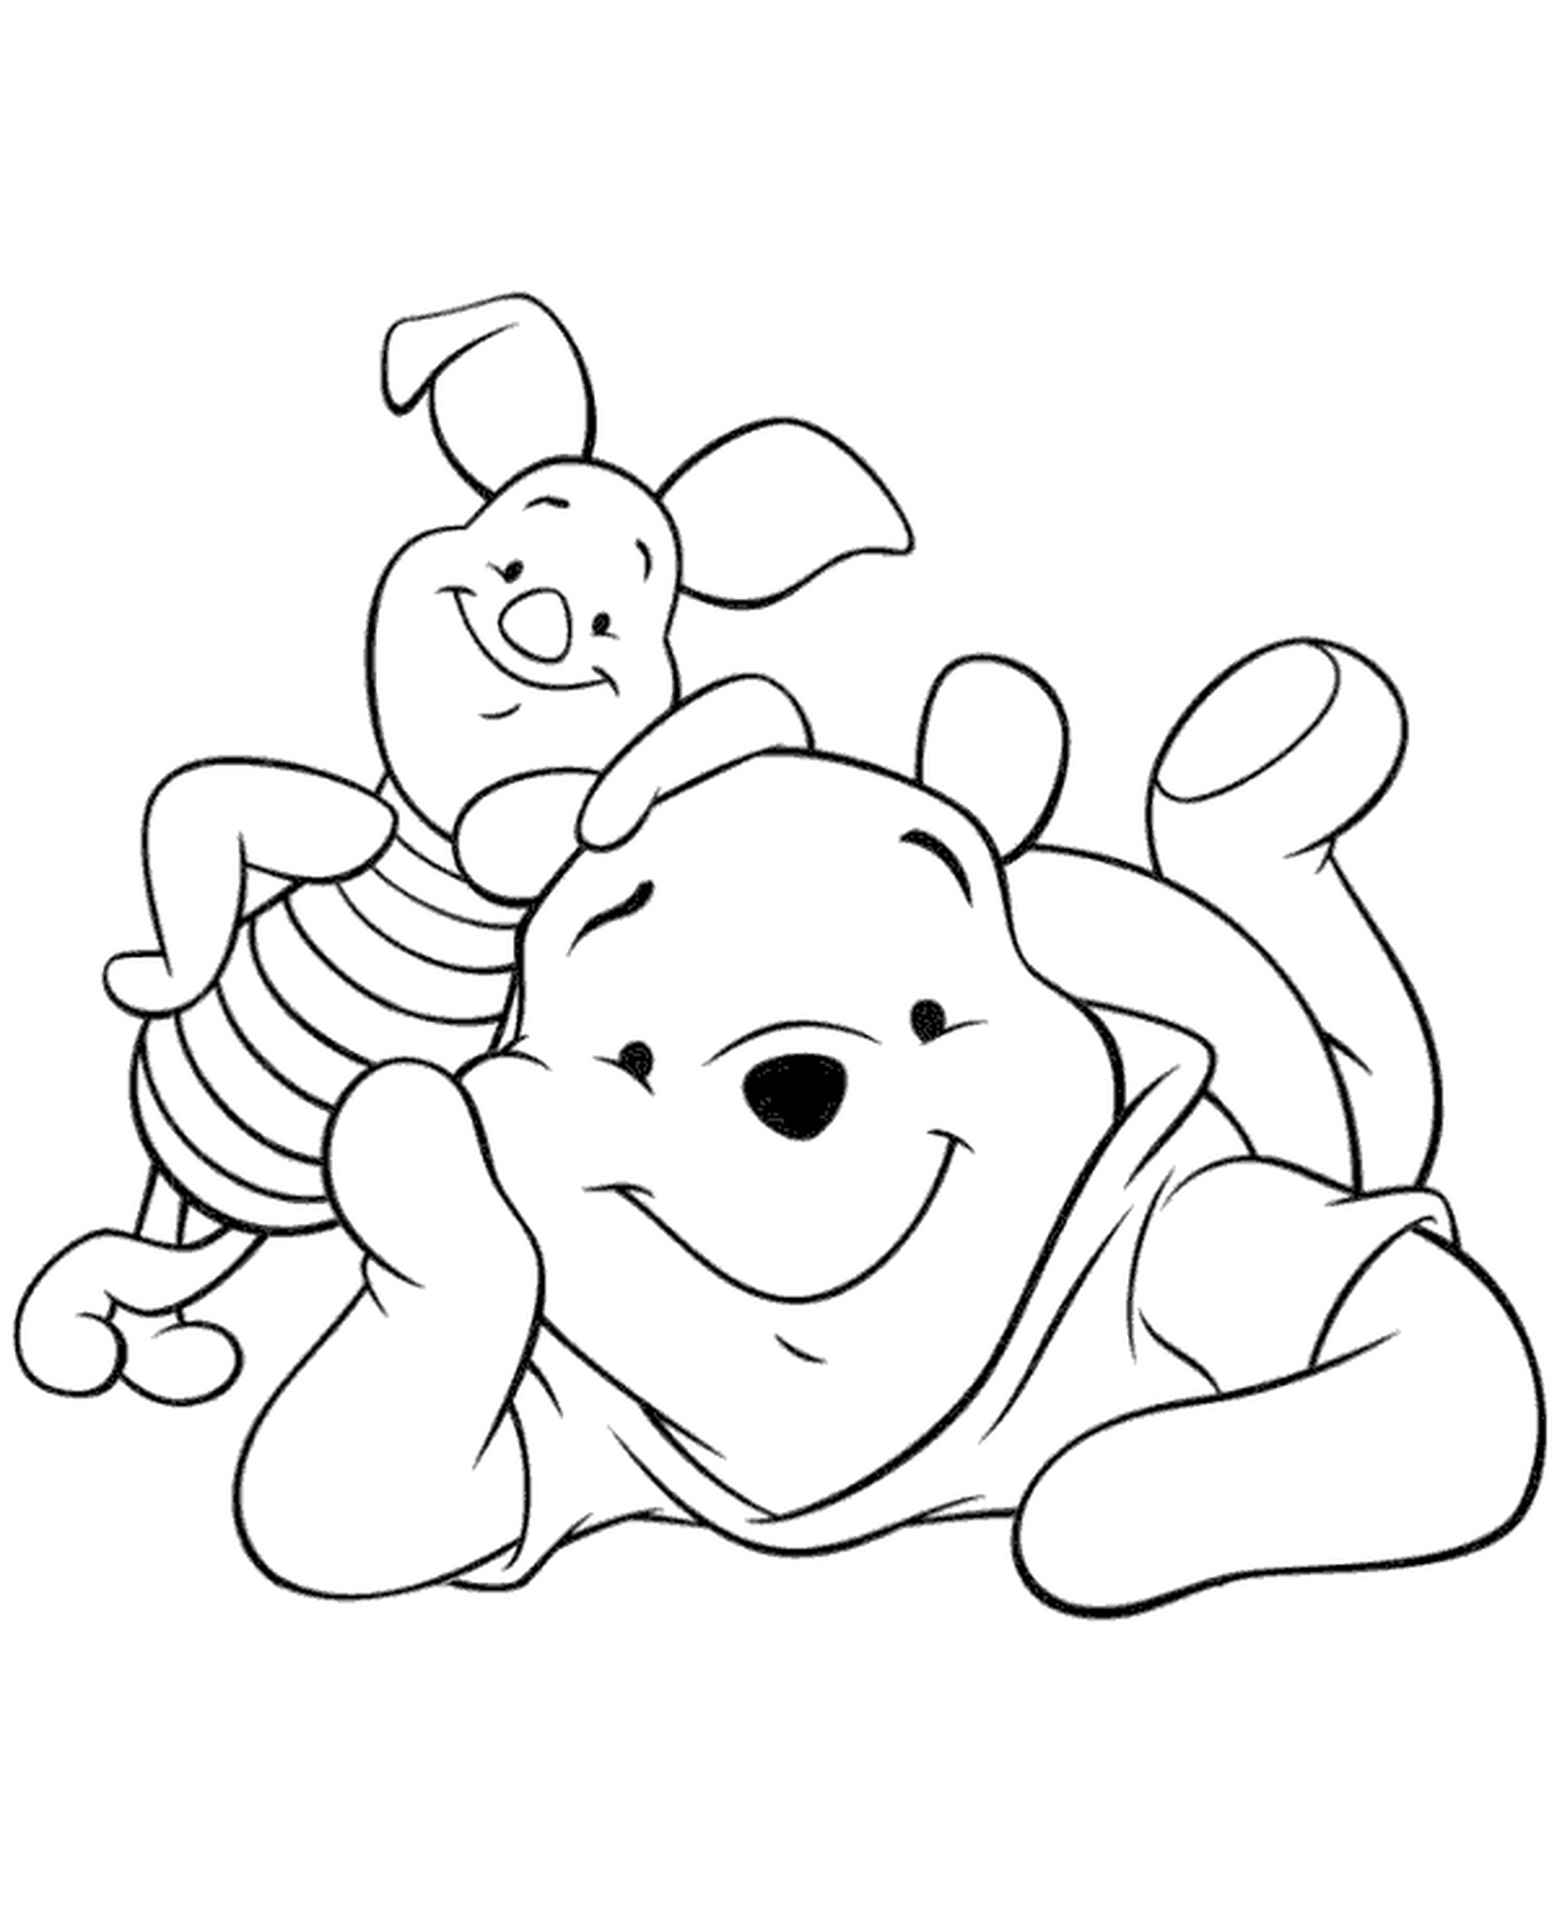 Pooh And Piglet Coloring Book